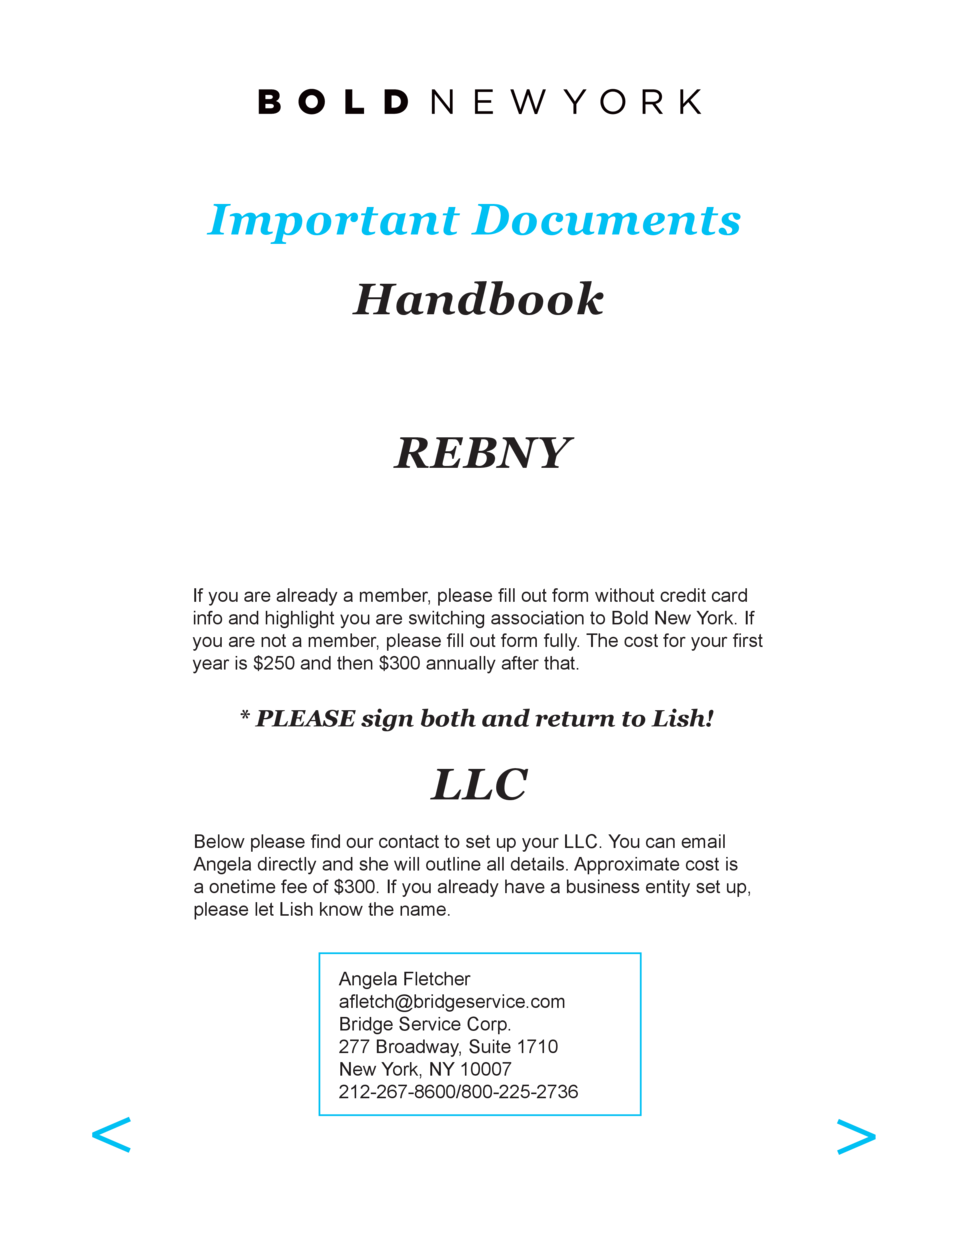 Important Documents Handbook REBNY If you are already a member, please fill out form without credit card info and highligh...